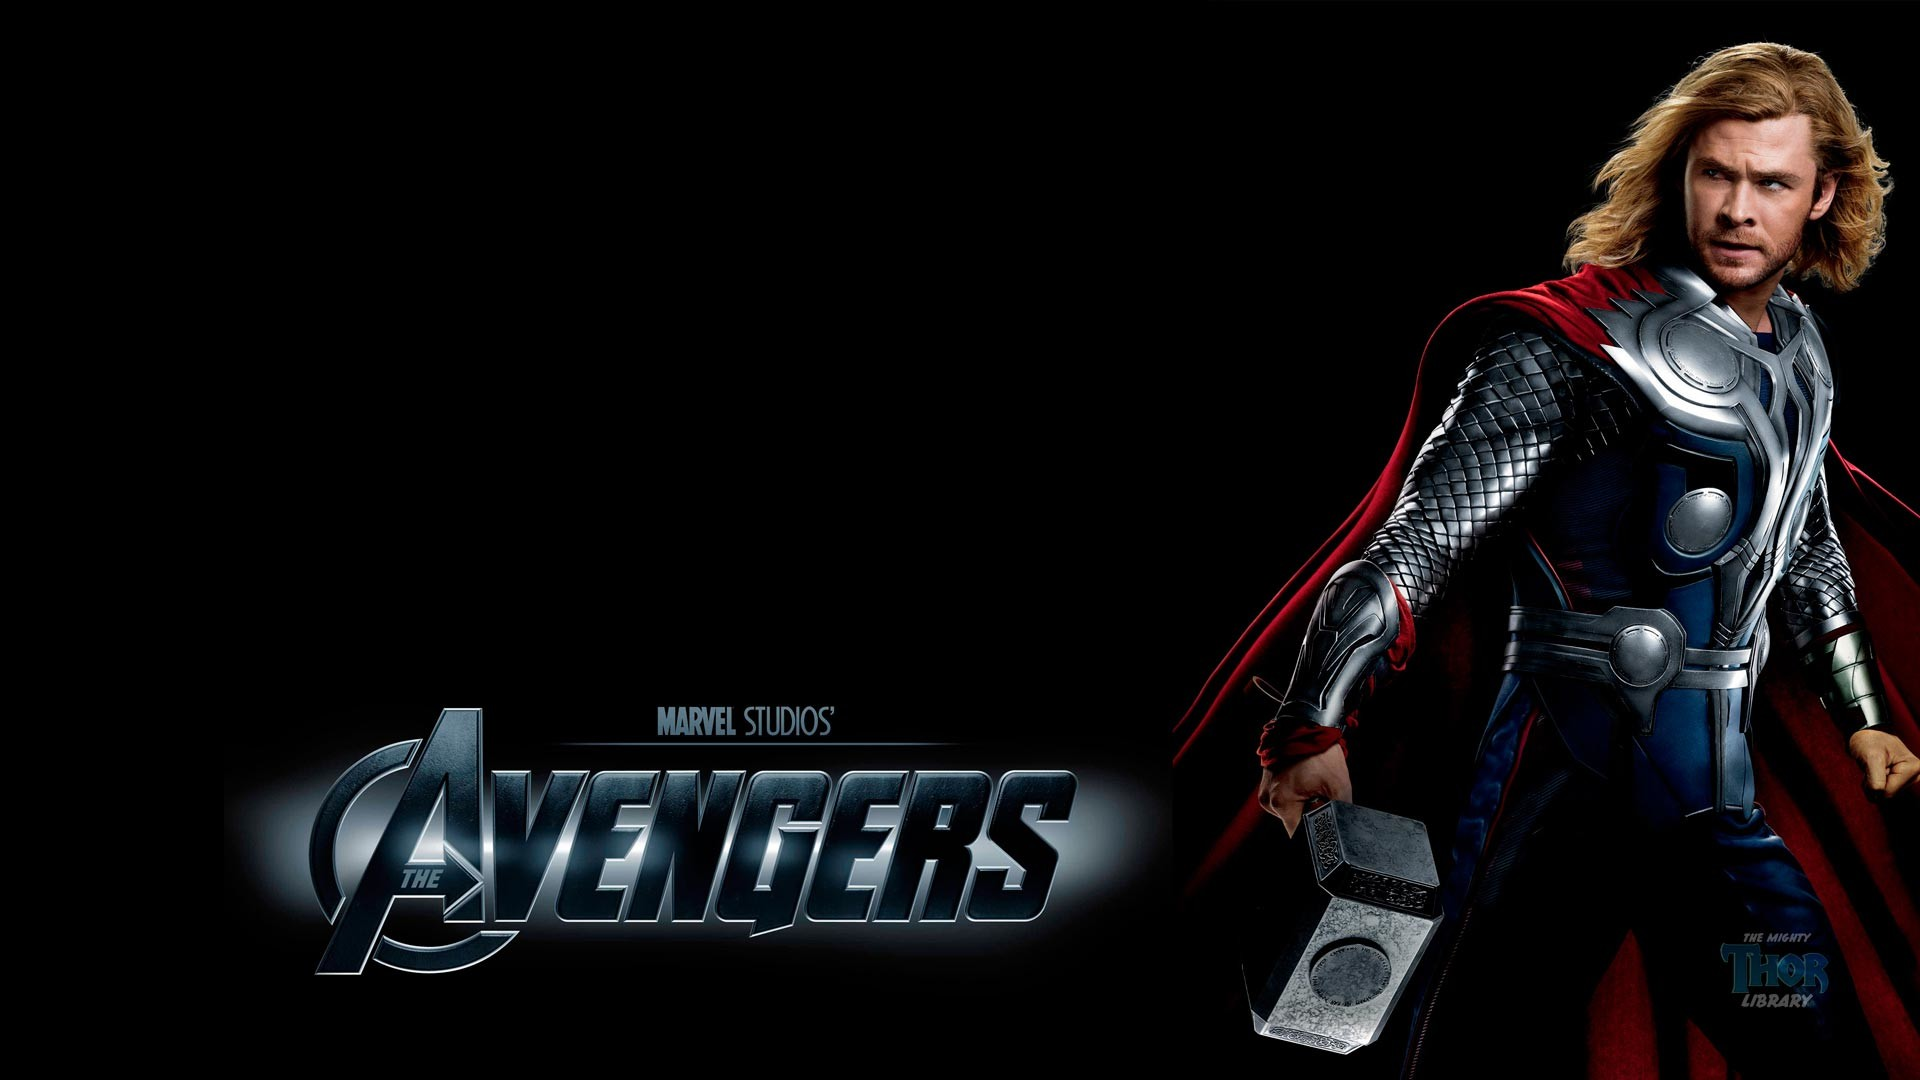 Related Wallpapers from Dexter. Thor Wallpaper